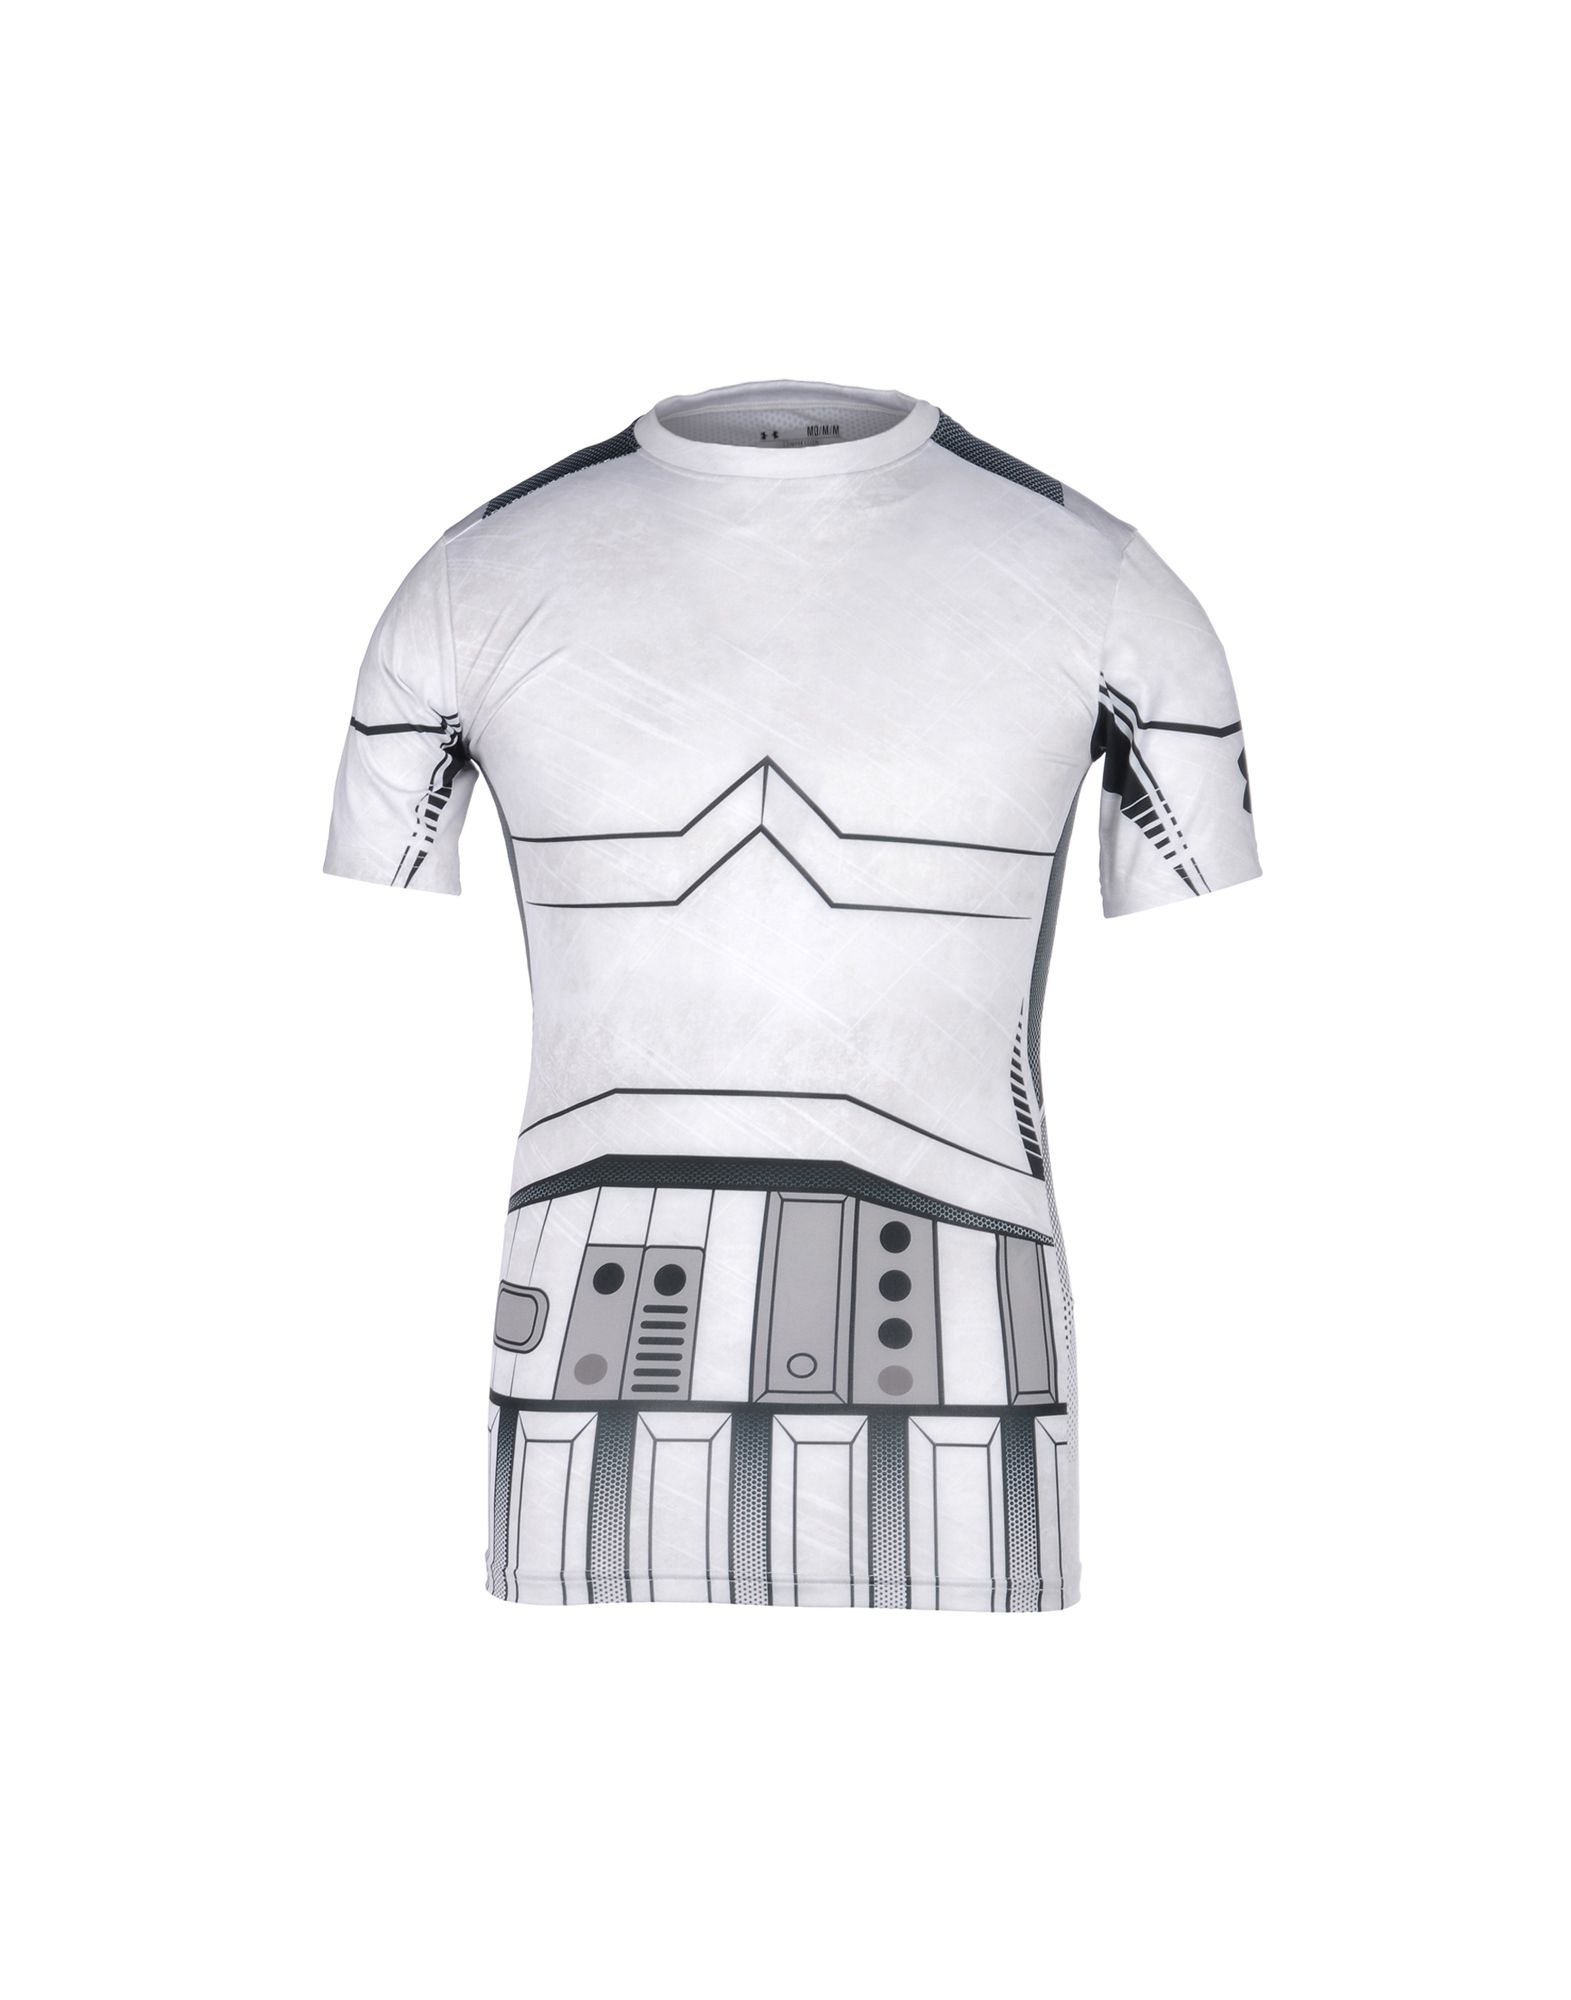 Under armour t shirt in grey for men light grey lyst for Gray under armour shirt